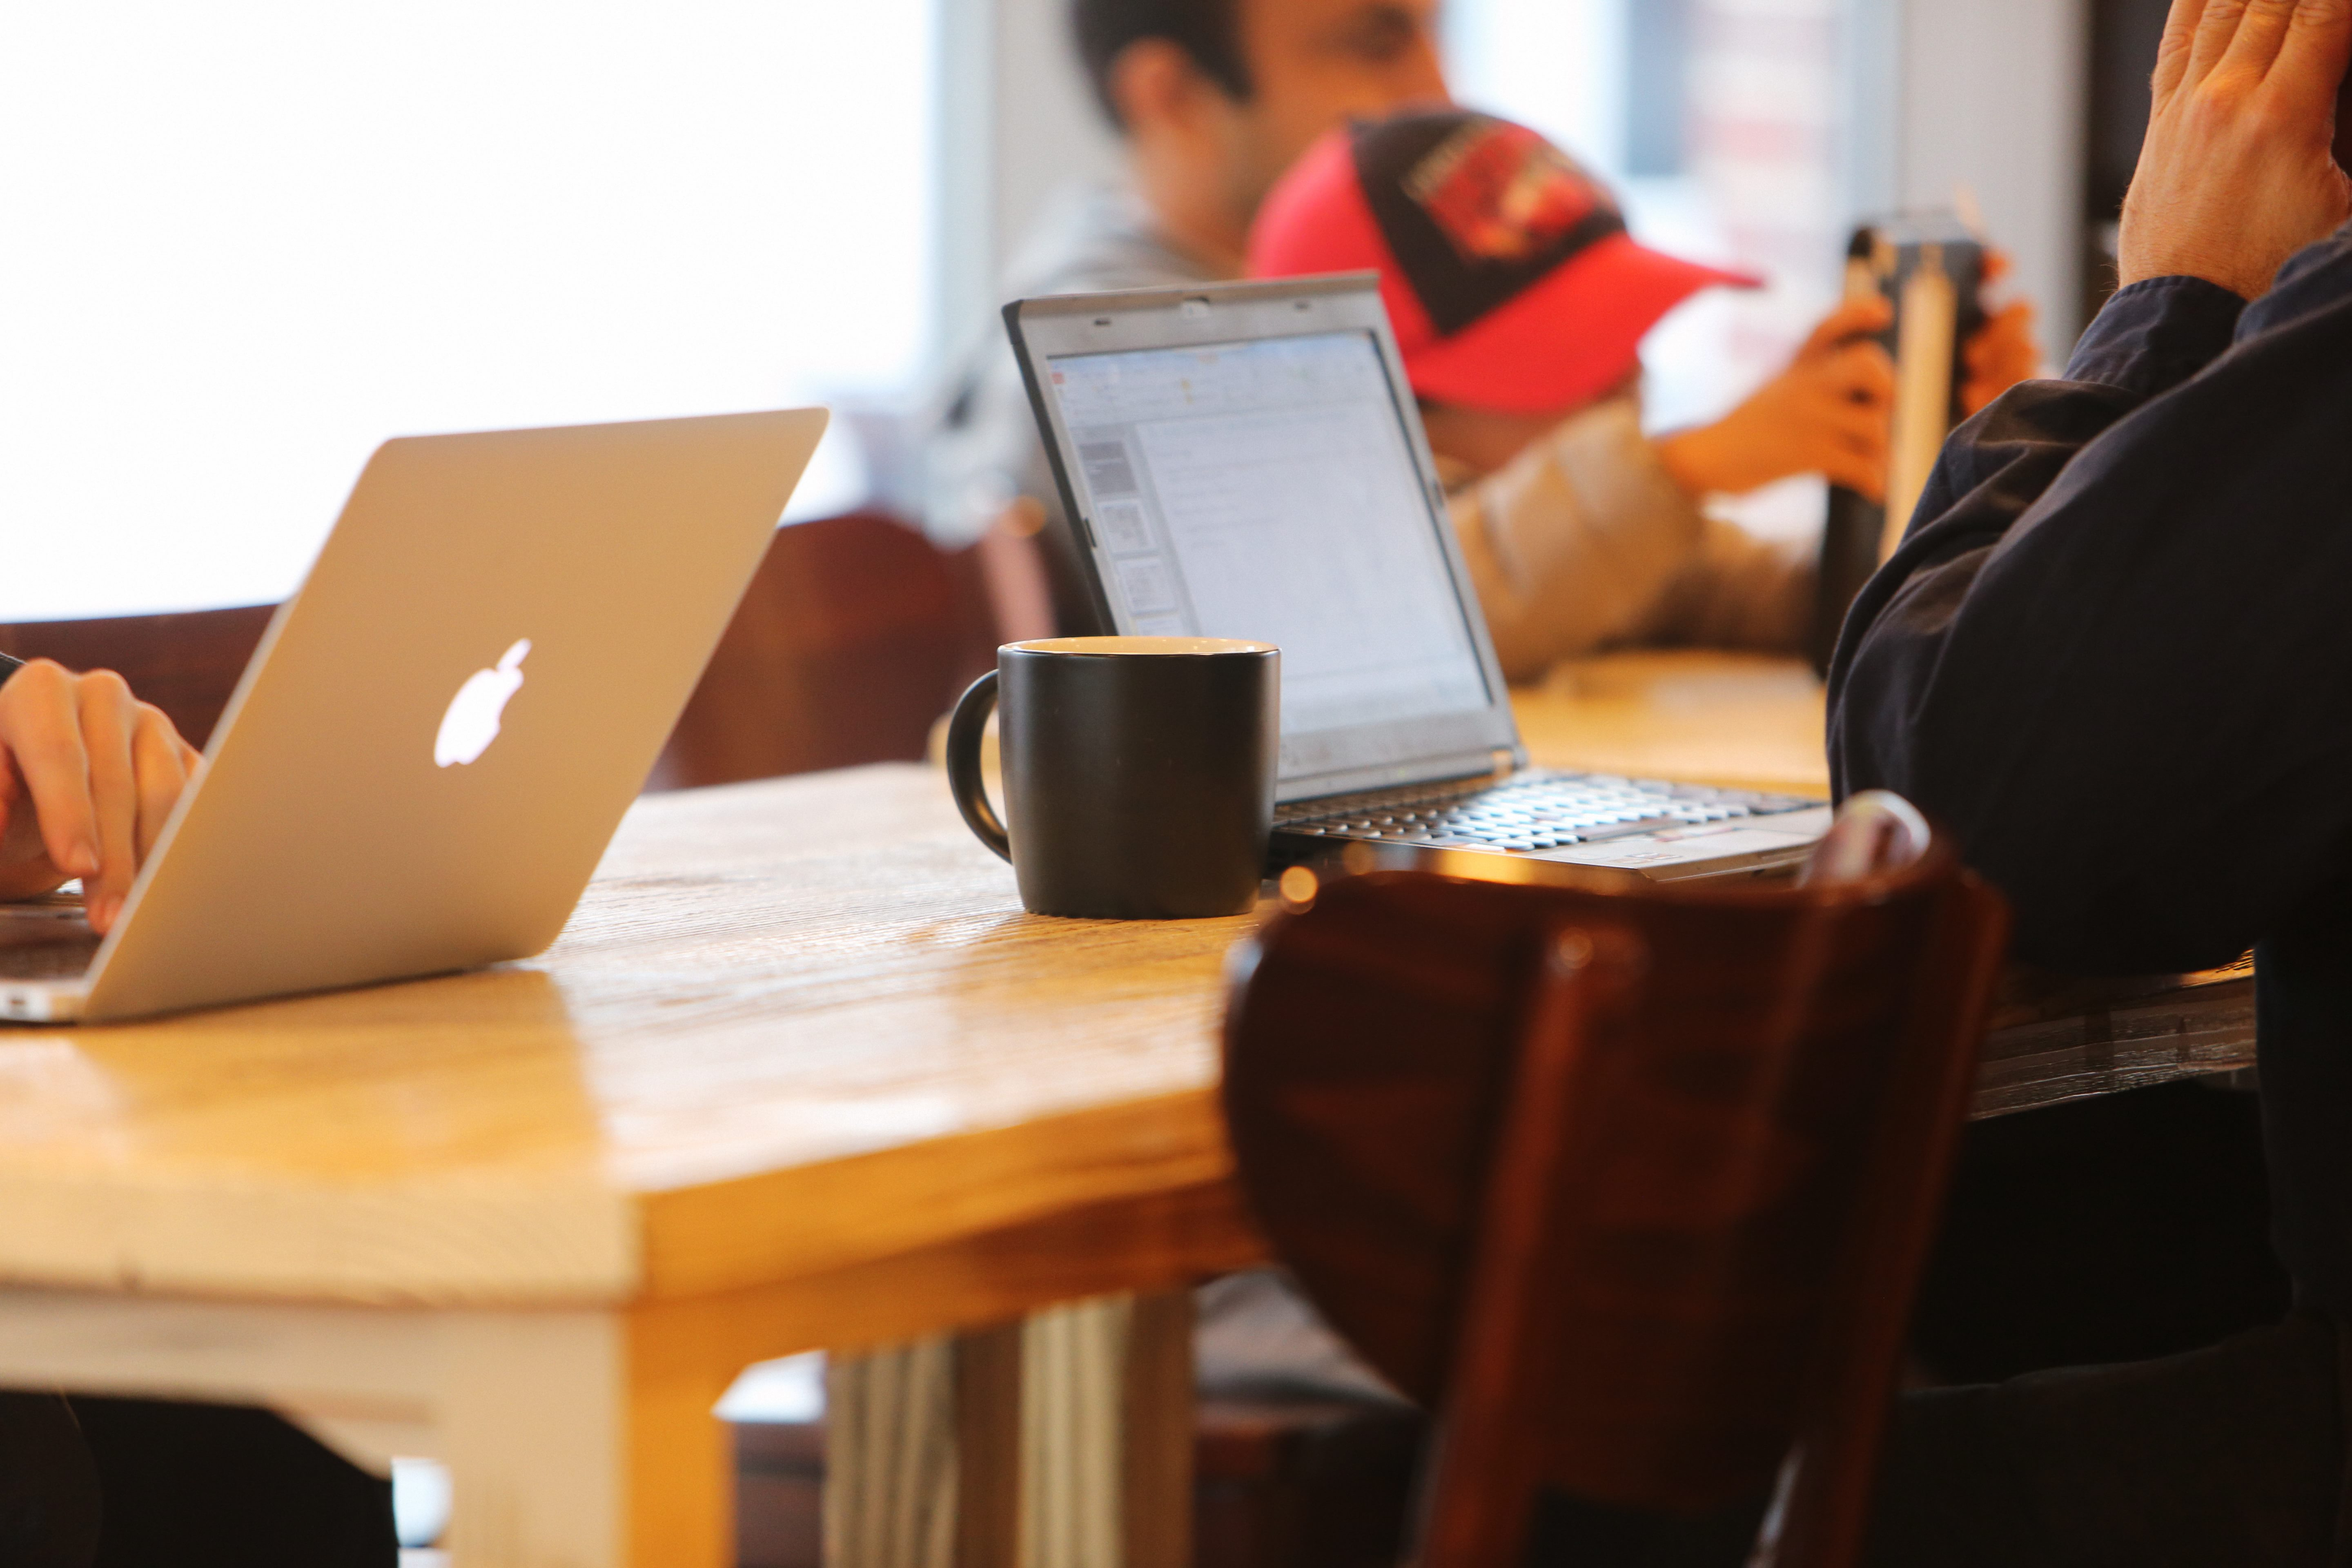 Picture of 2 laptops at a table with a cup of coffee on it and a boy in the background faded out